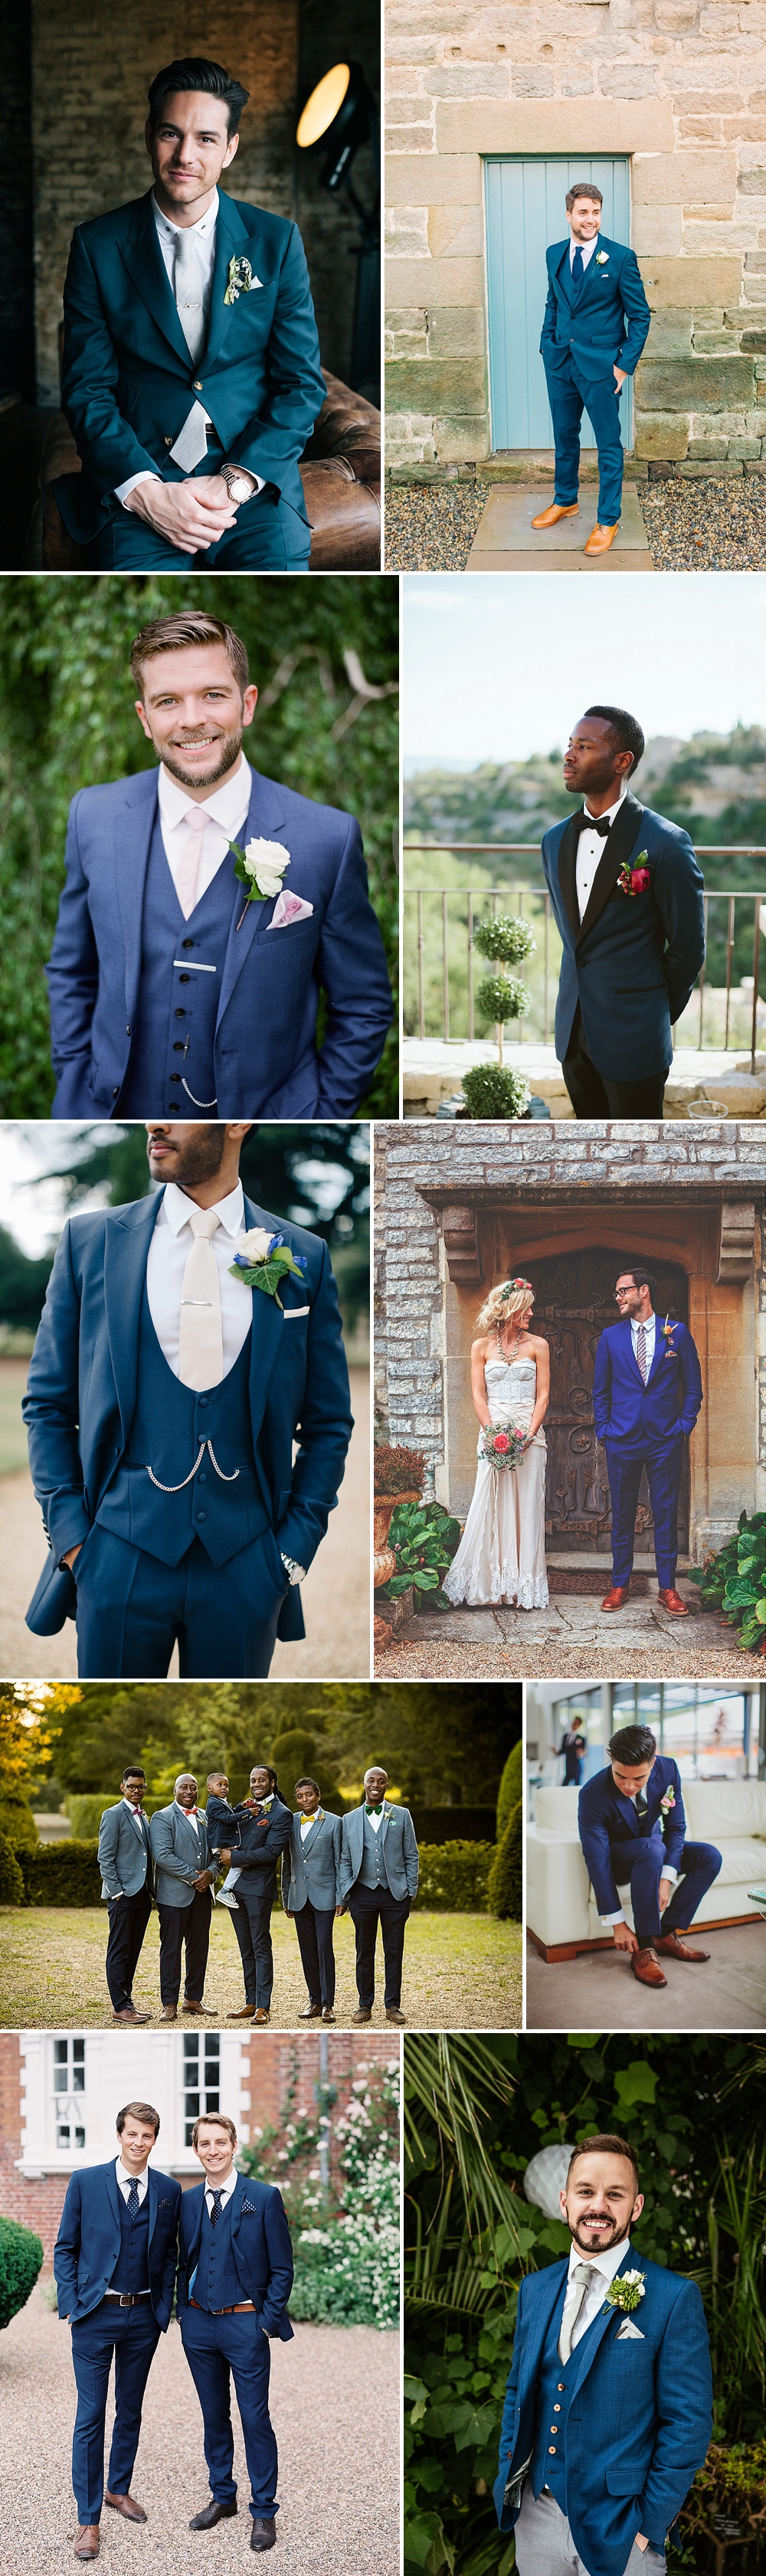 Groom Wearing Royal Blue For Wedding | Groom Fashion Inspiration